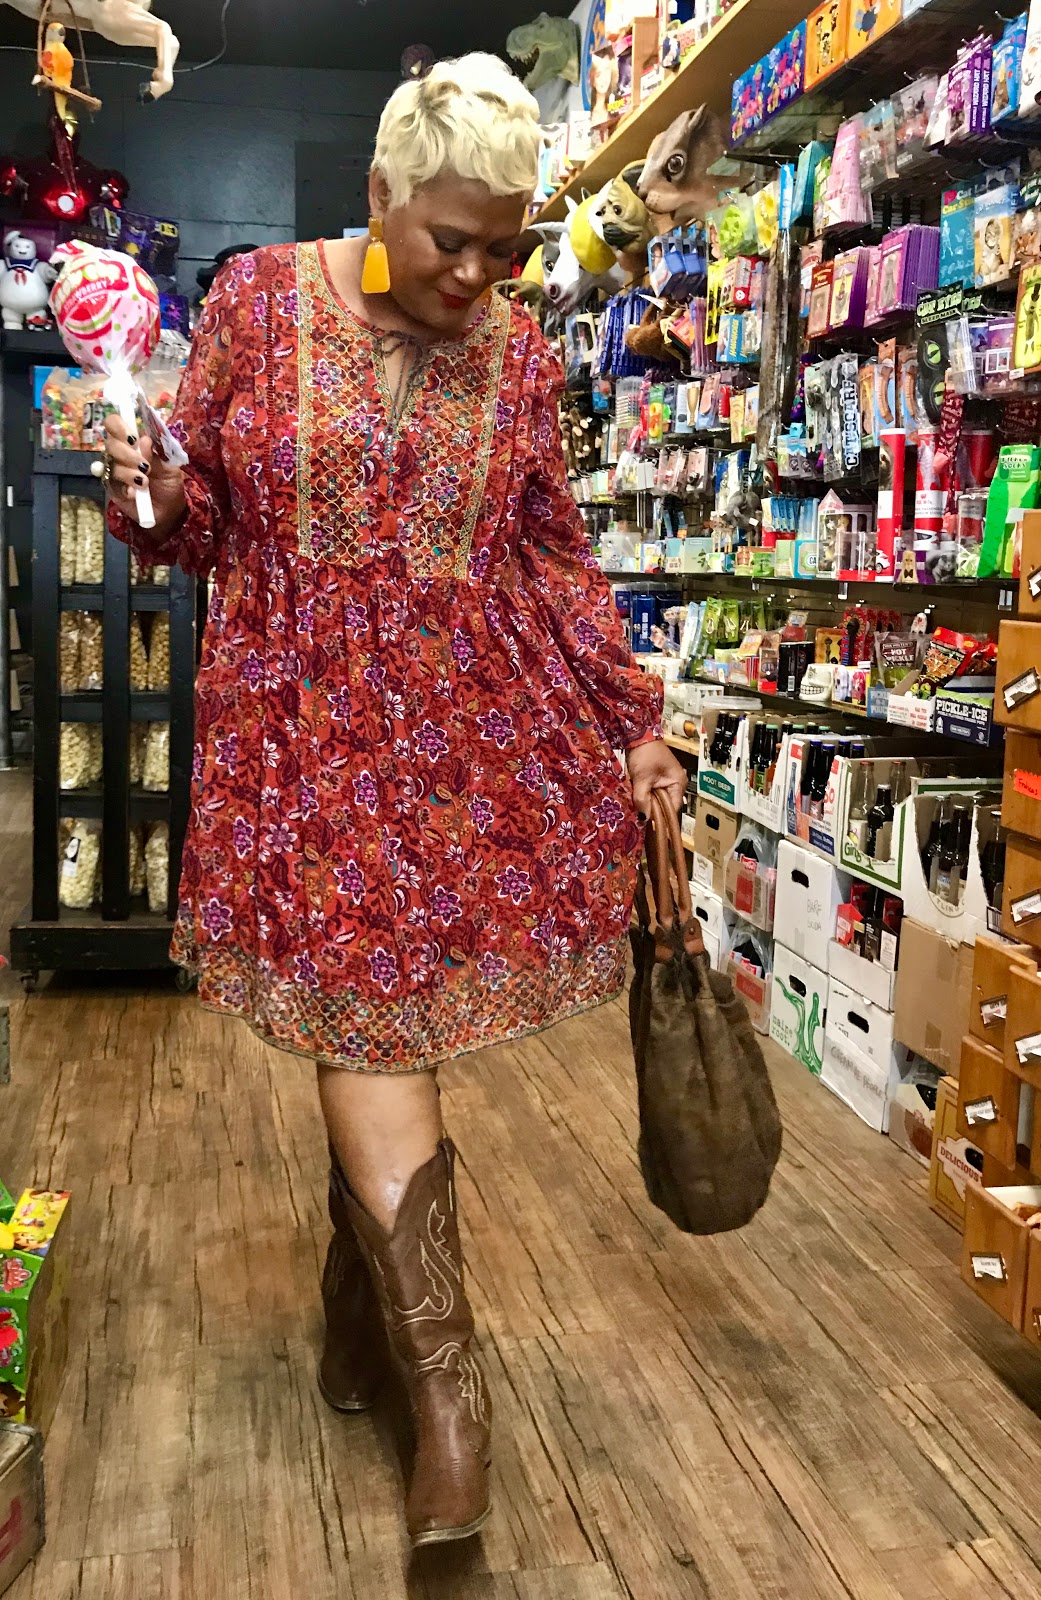 Judge My Style: I am finally wearing my thrifted bohemian bag with my gently used yellow 70's inspired earrings.